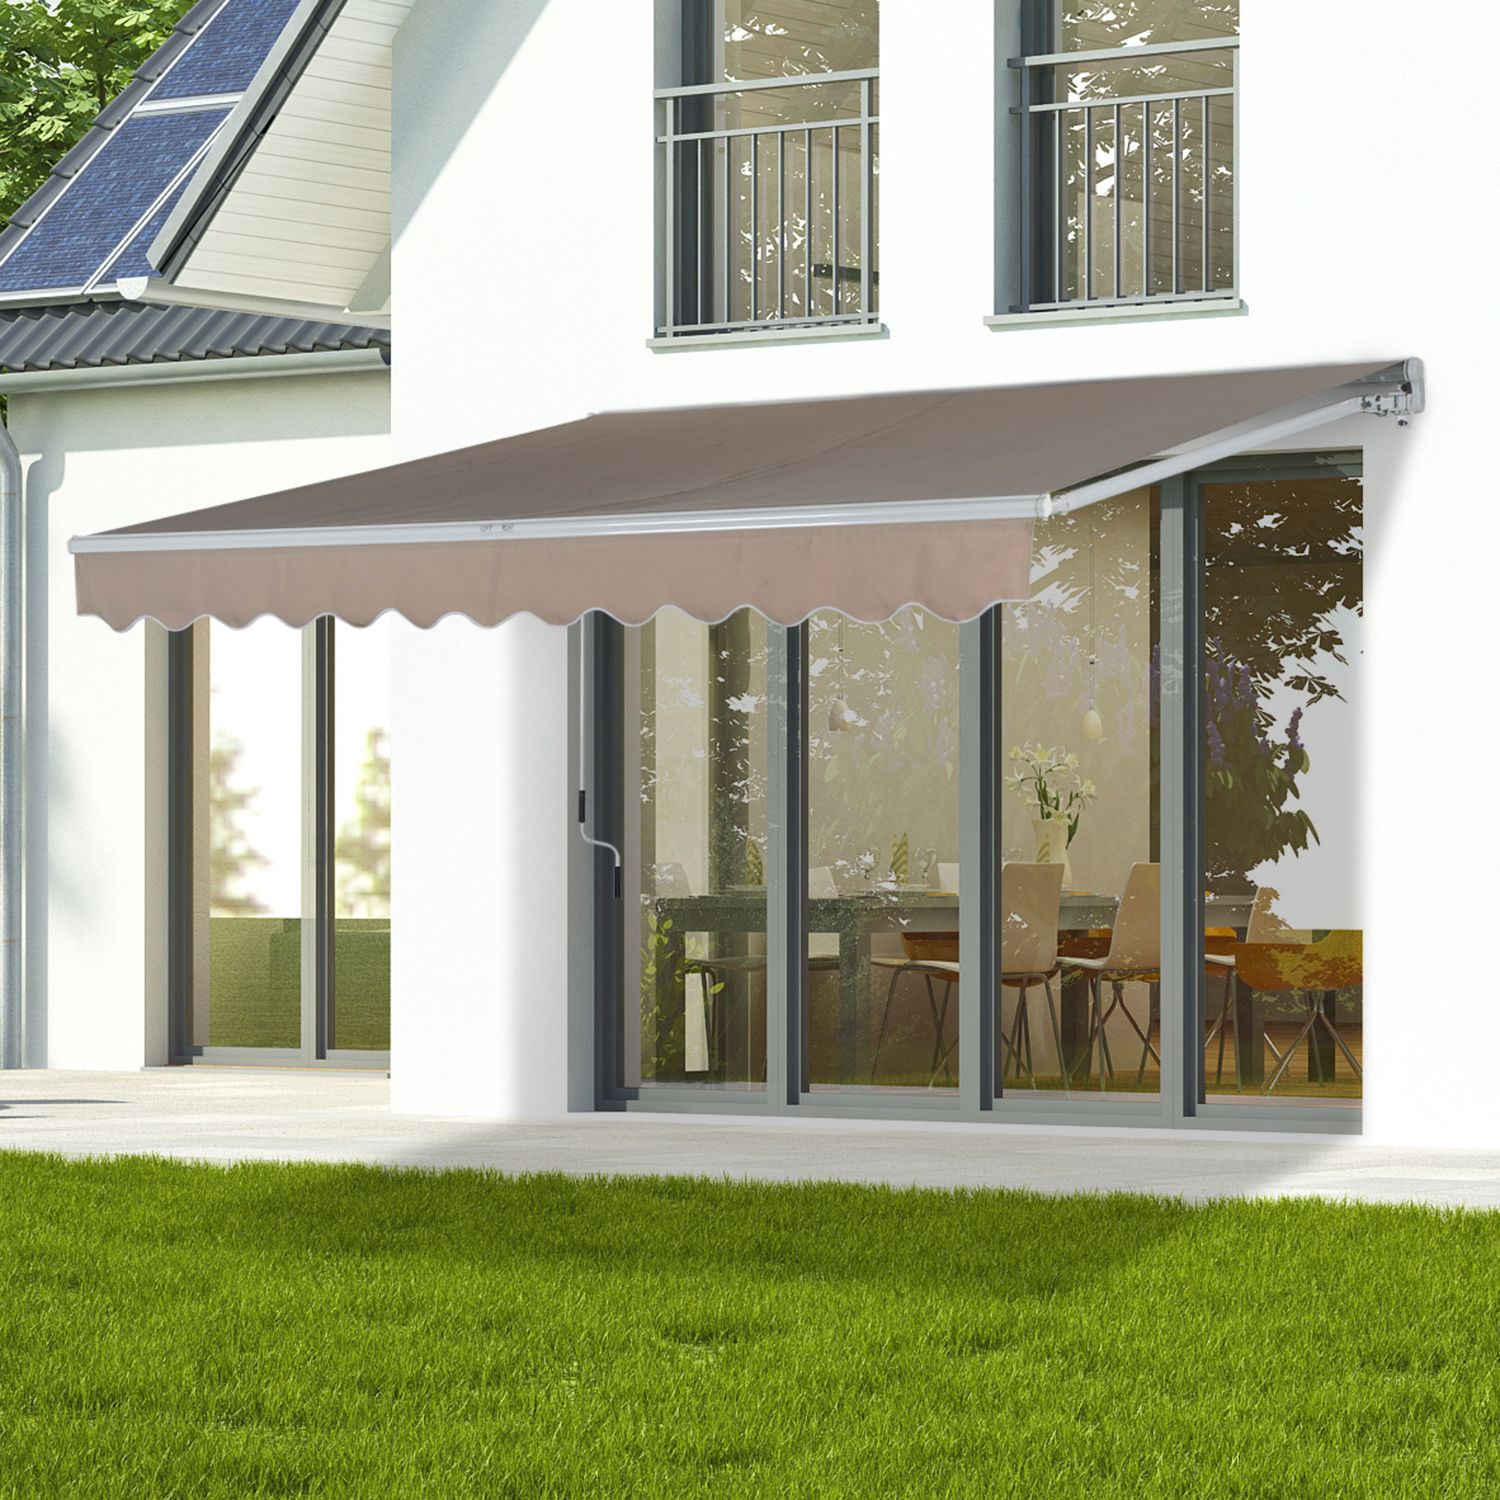 Patio-Awning-Canopy-Retractable-Deck-Door-Outdoor-Sun- & Patio Awning Canopy Retractable Deck Door Outdoor Sun Shade ...